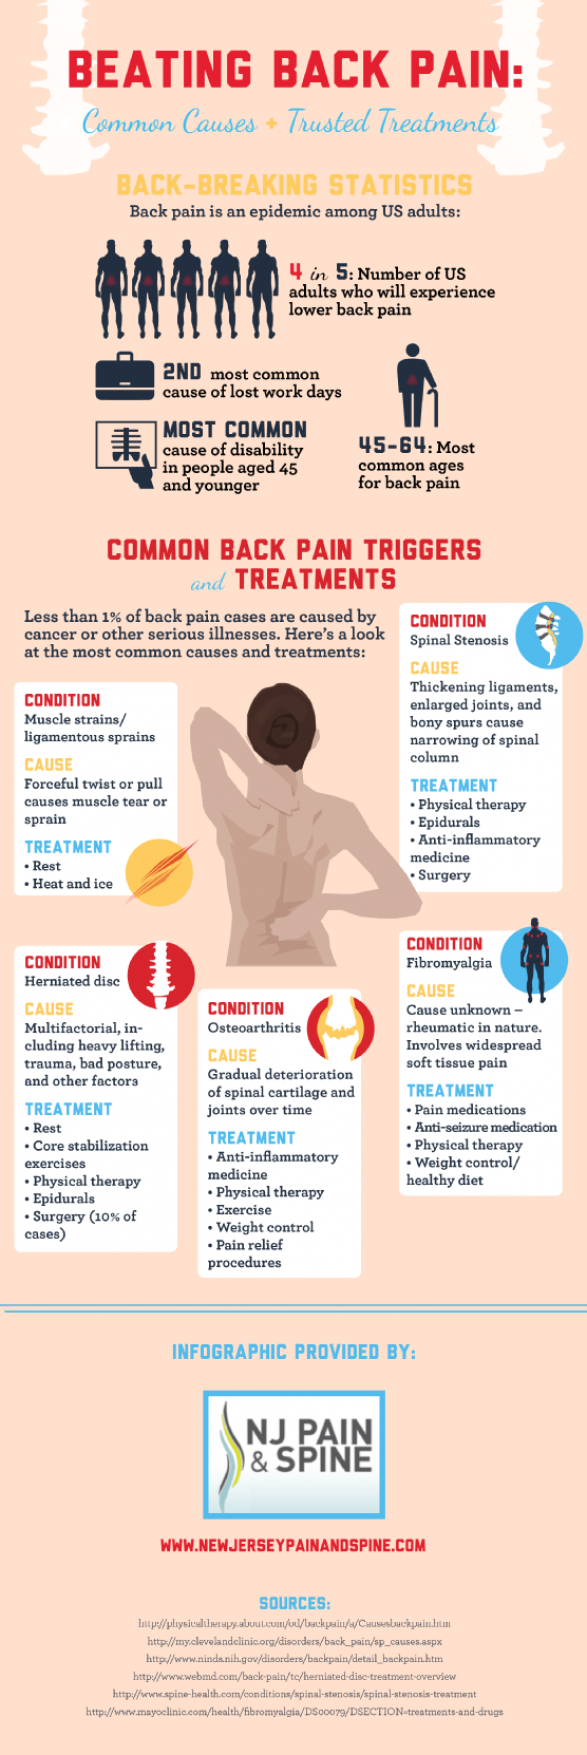 Beating Back Pain: Common Causes and Trusted Treatments